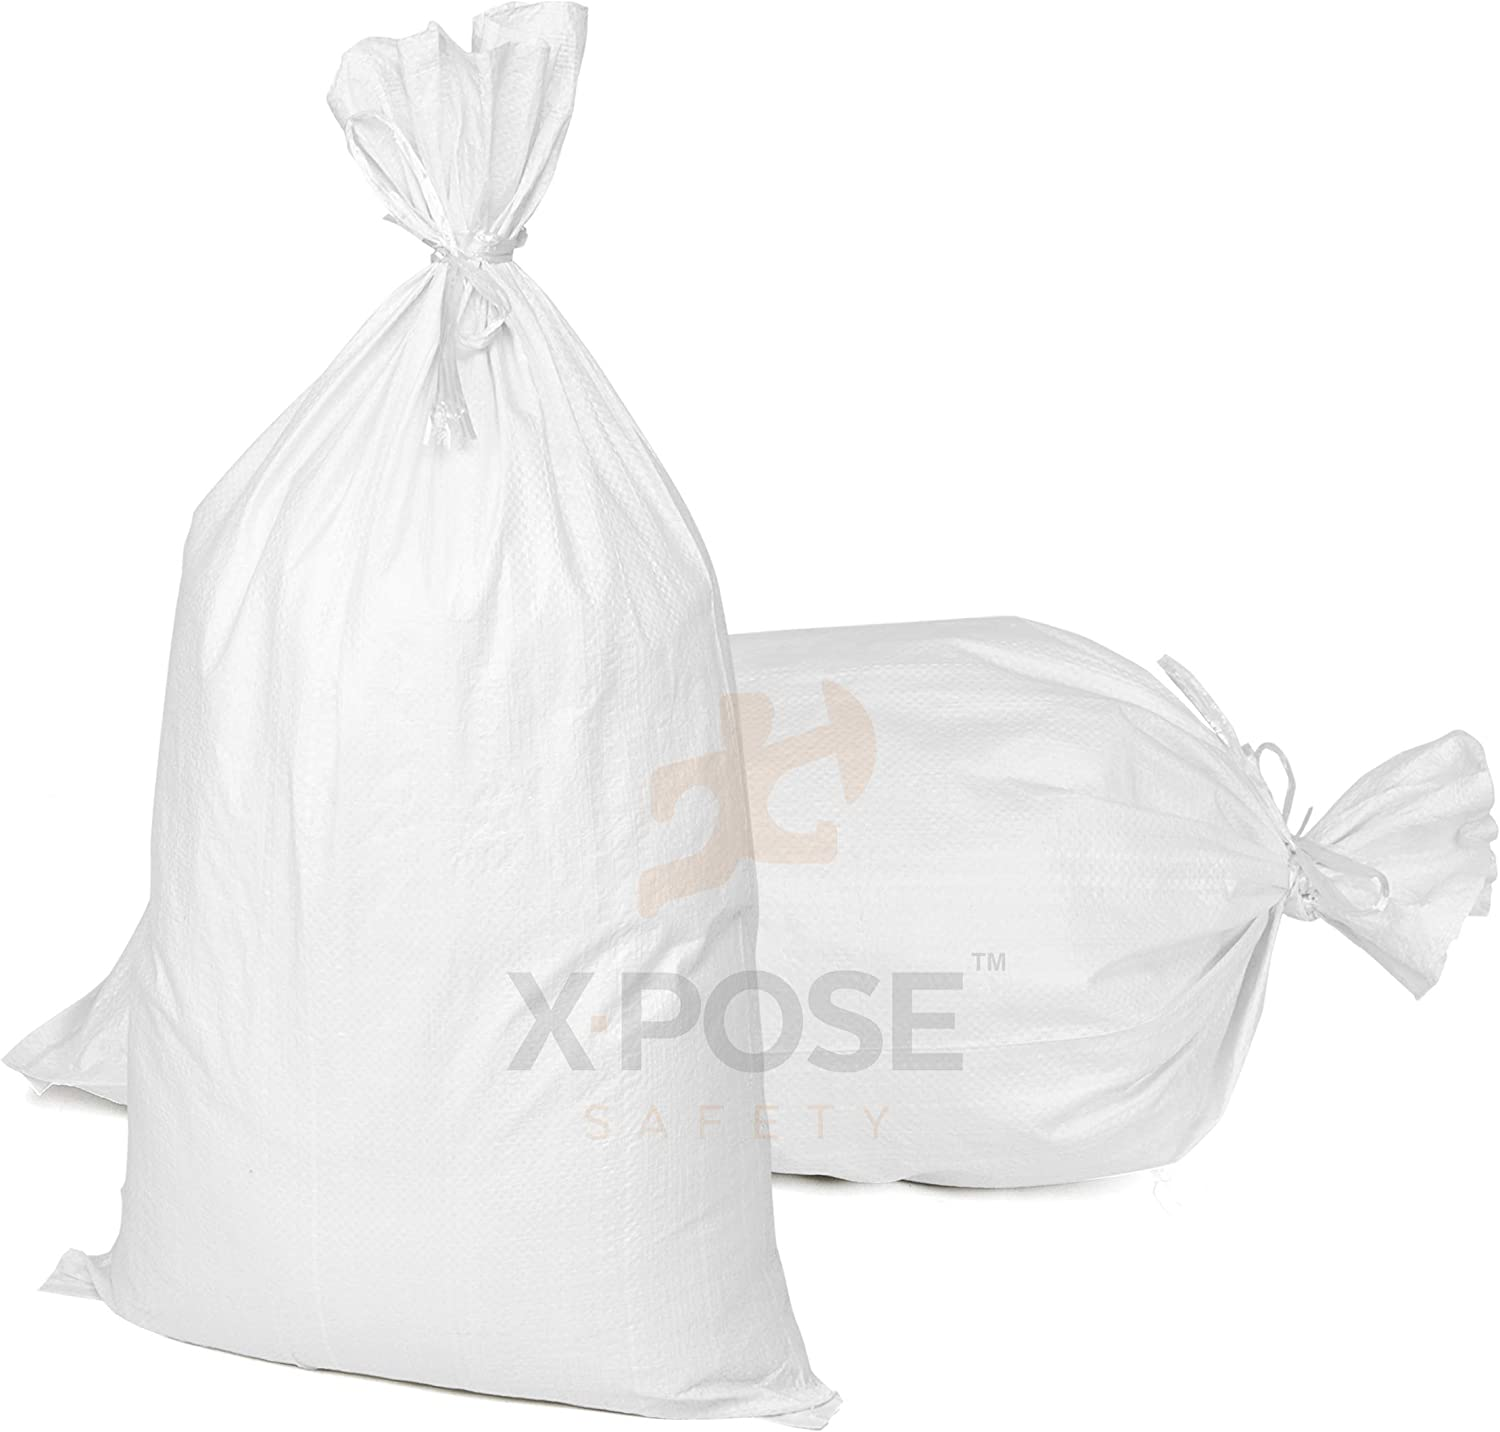 UV Protection 100Pack MTB Sand Bags 14x26 Empty White Woven Polypropylene w//Ties Also Sold in 10Pack // 50Pack. 17x27 // 18x30 Available